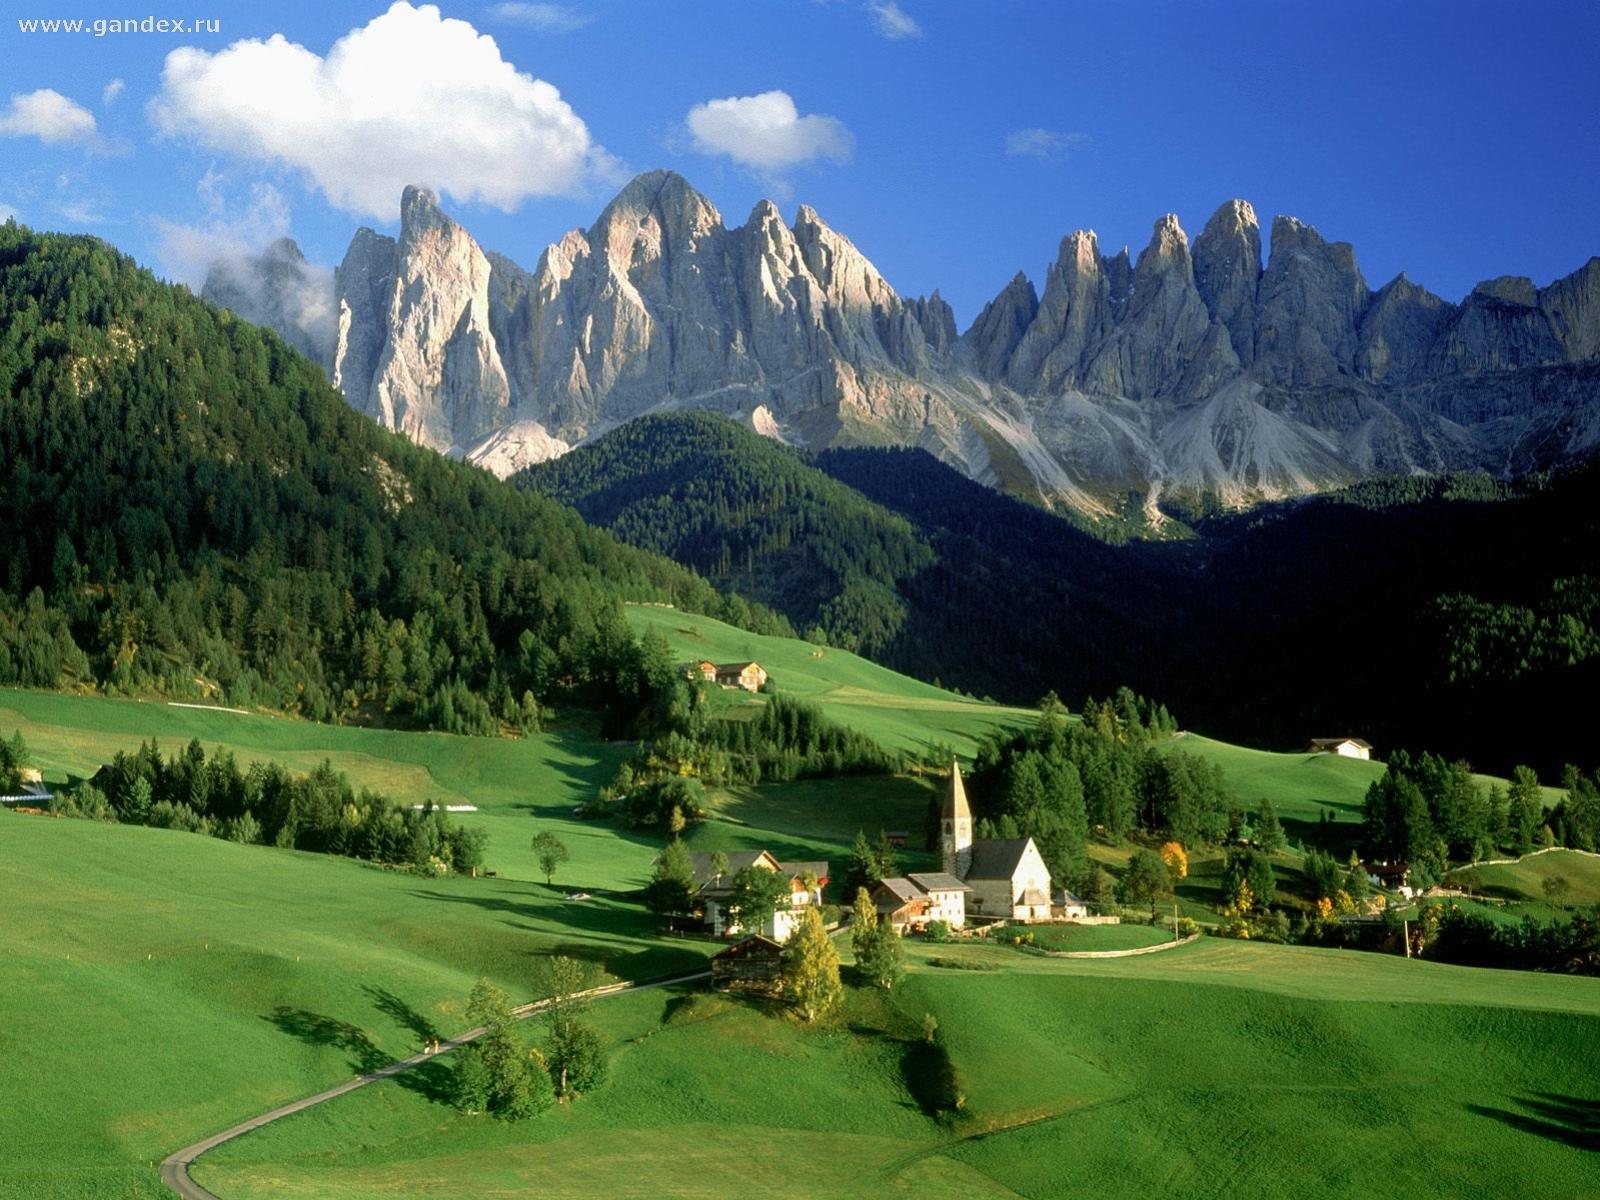 The beautiful nature of Italy, wallpaper - green fields, houses and mountains - nature